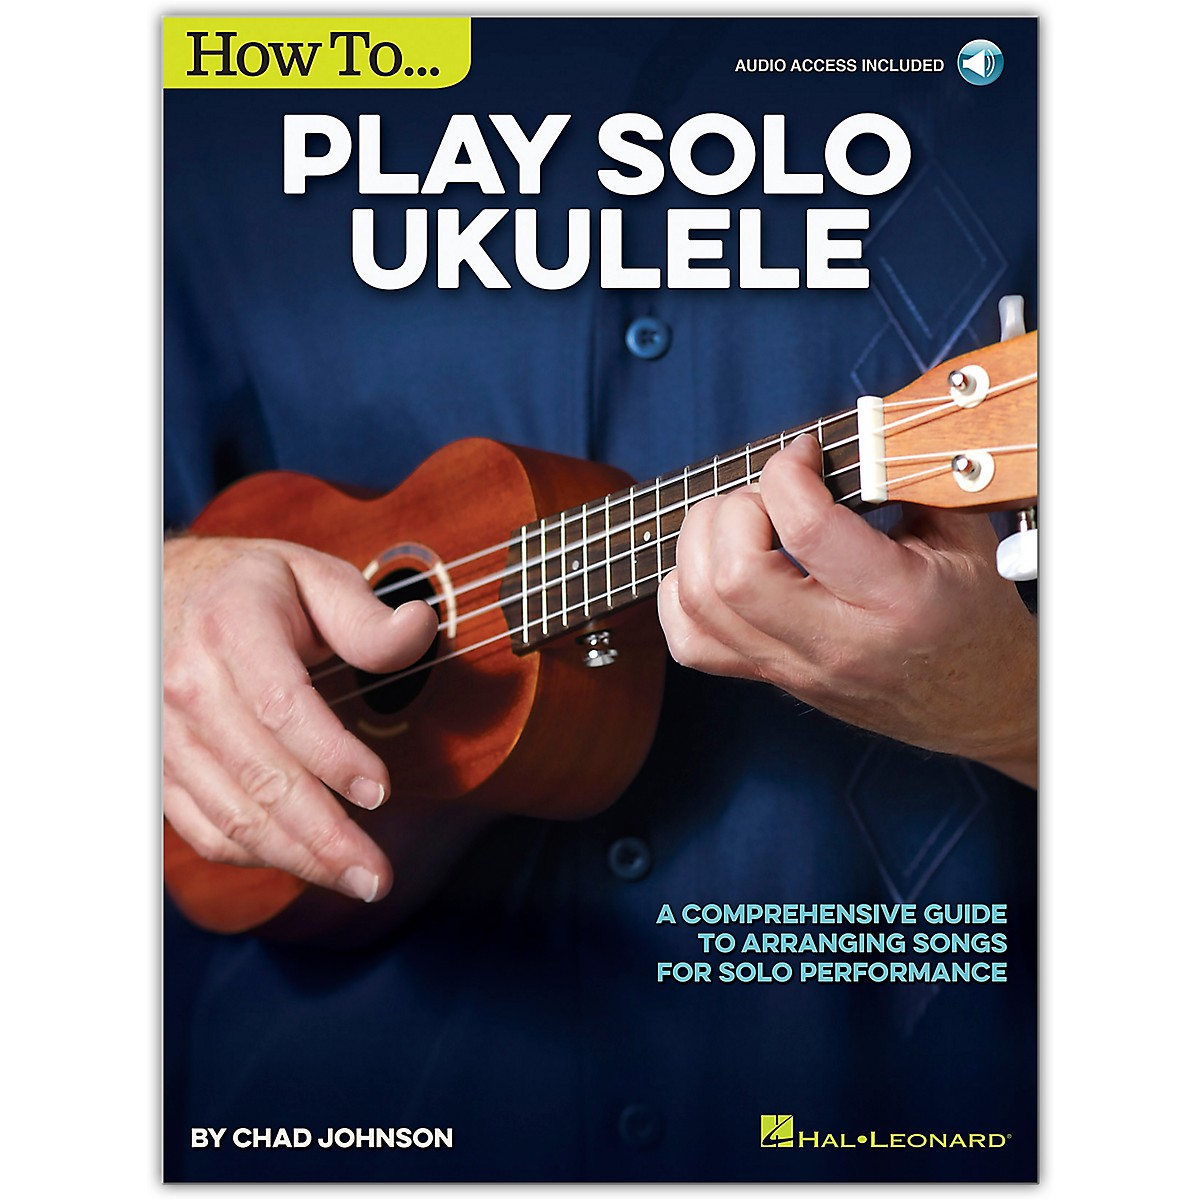 Hal Leonard How to Play Solo Ukulele - A Comprehensive Guide to Arranging Songs for Solo Performance Book/Online Audio